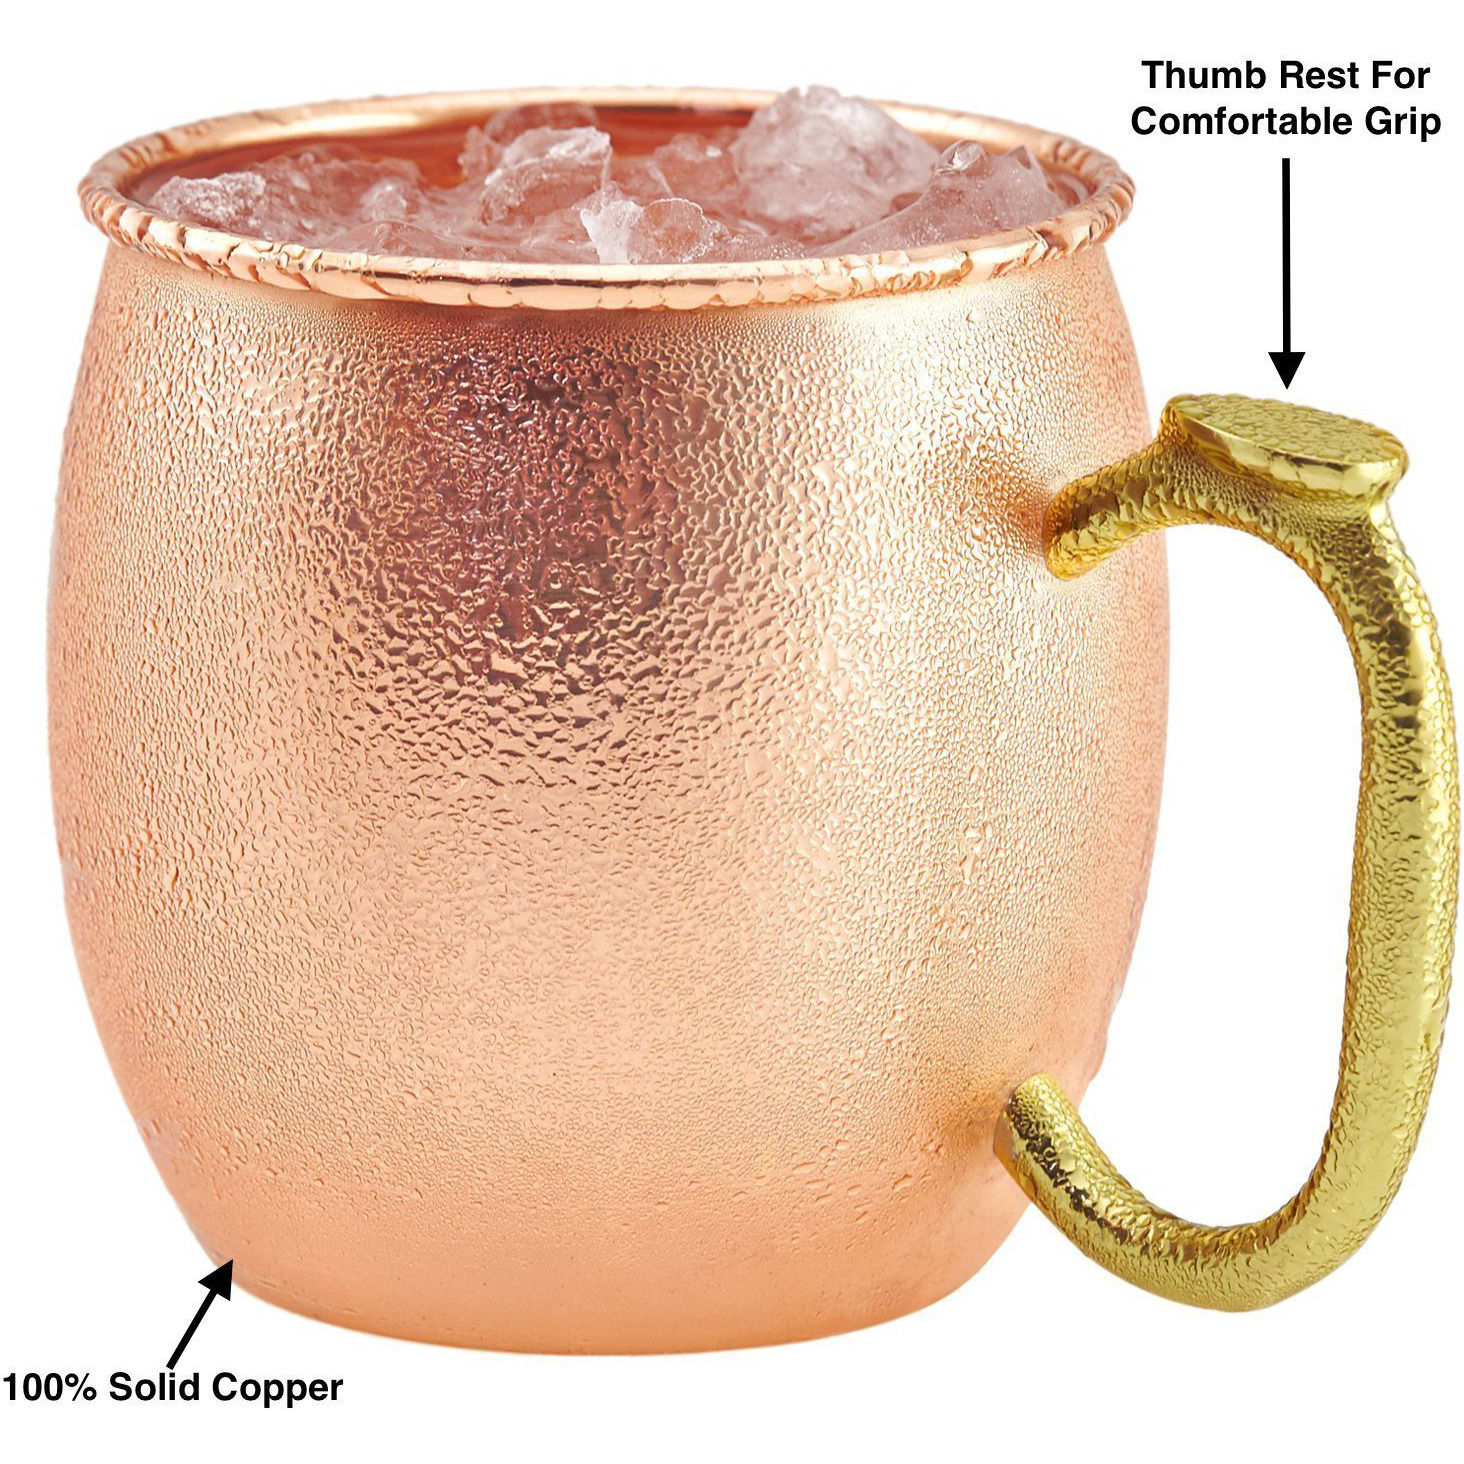 Set of 4 - Prisha India Craft B. Pure Copper Moscow Mules Copper Mug with Thumb Handle 475 ML / 16 oz - Cocktail Cup - Christmas Gift Bonus with WOODEN KEYRING, Copper Straw, Beaded Coaster